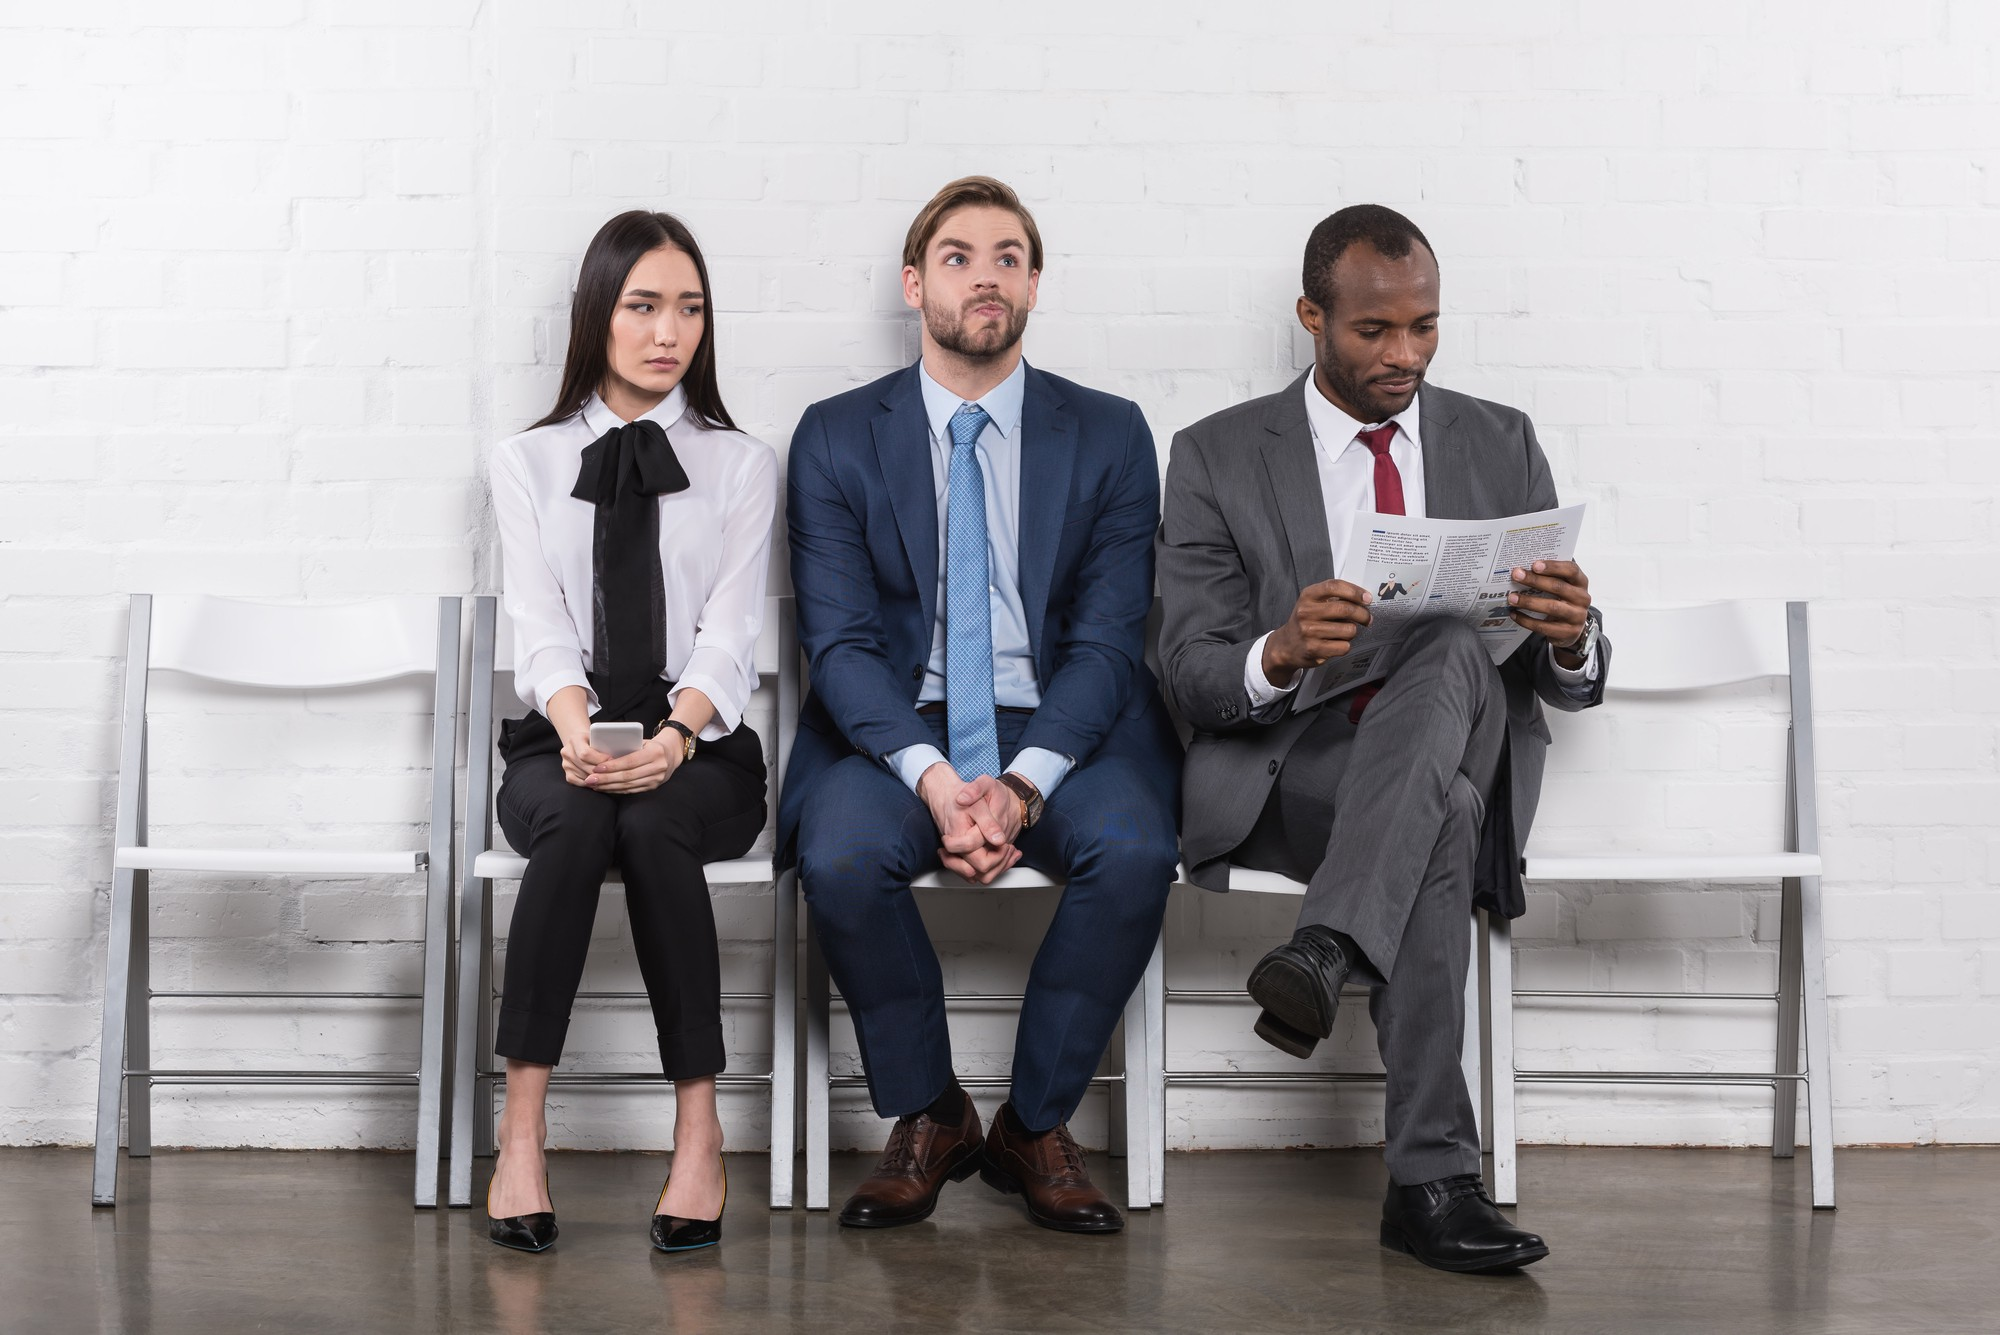 Source: https://depositphotos.com/184229582/stock-photo-multiethnic-young-business-people-waiting.html